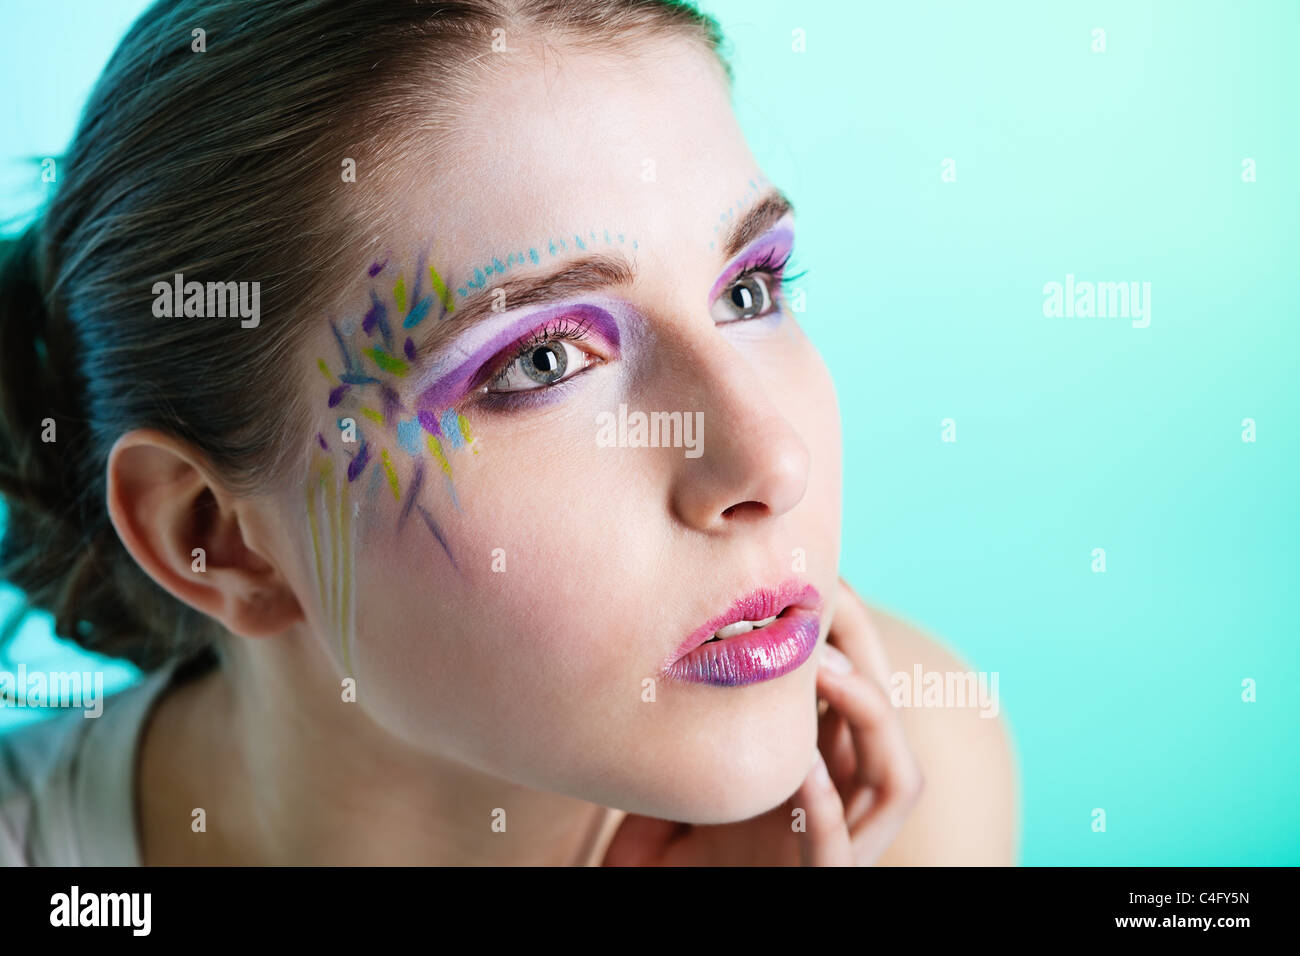 Closeup portrait of a pretty young woman with face art - Stock Image